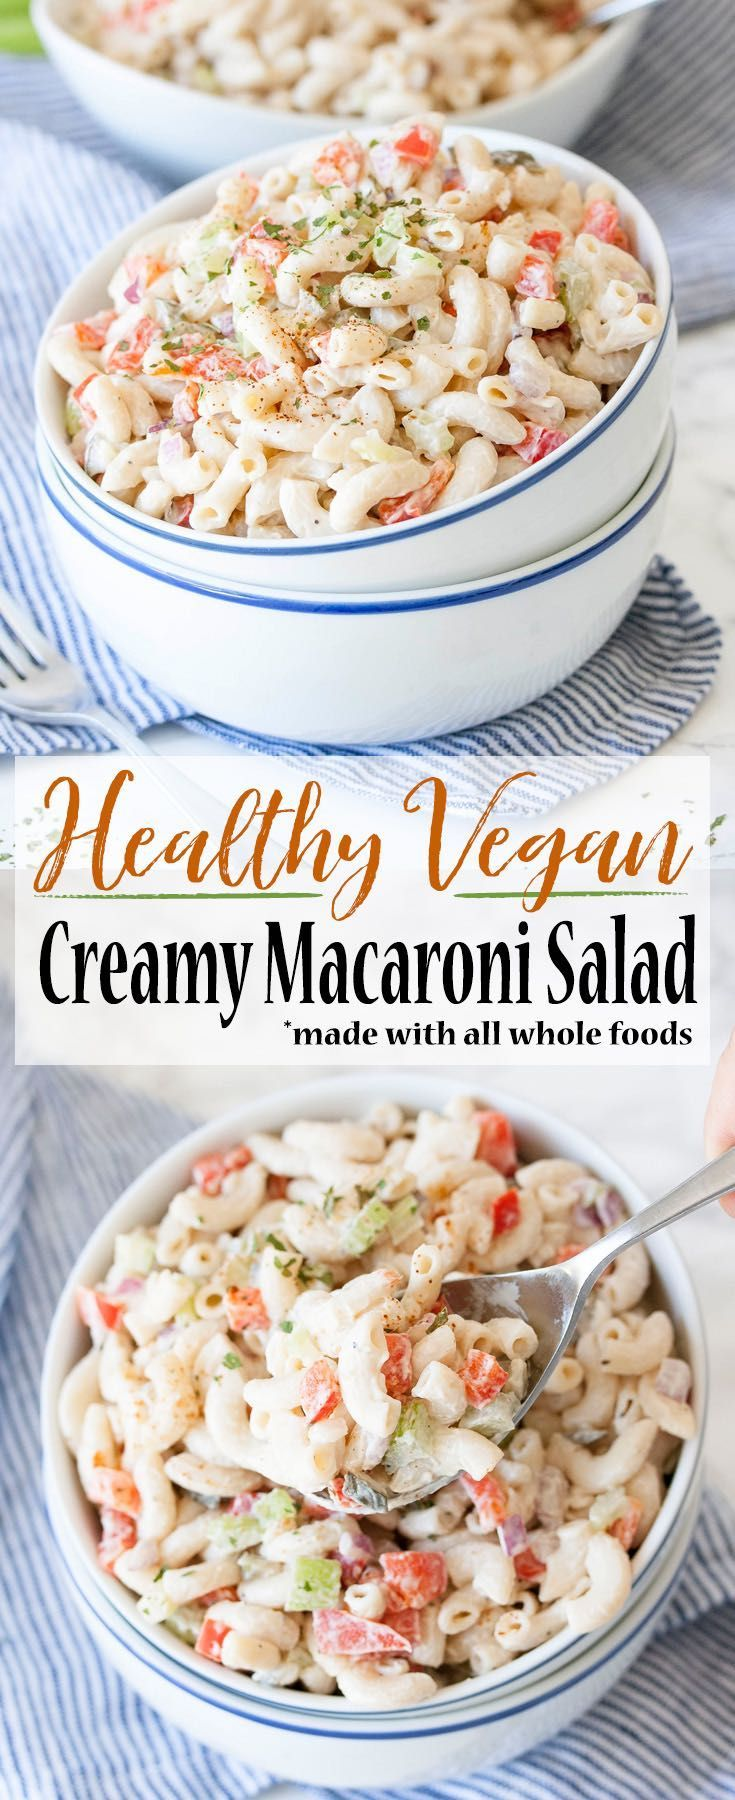 Creamy comfort food gone healthy in this vegan macaroni salad made with all whole food ingredients! Perfect for barbecues, picnics or a night on the couch!